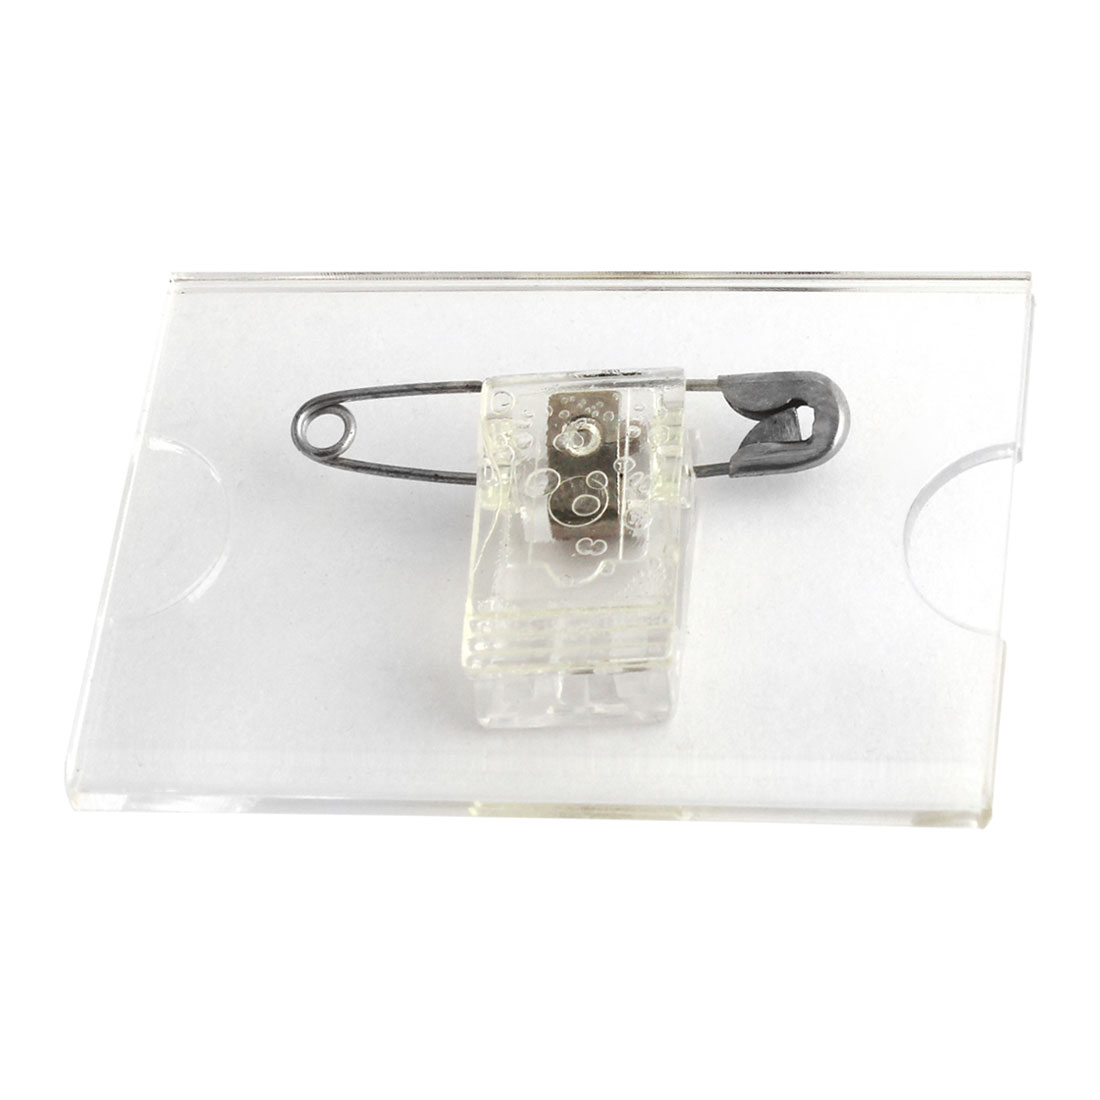 Office Plastic Business Card Name Tag Safety Pin Clip Holder Clear Silver Tone